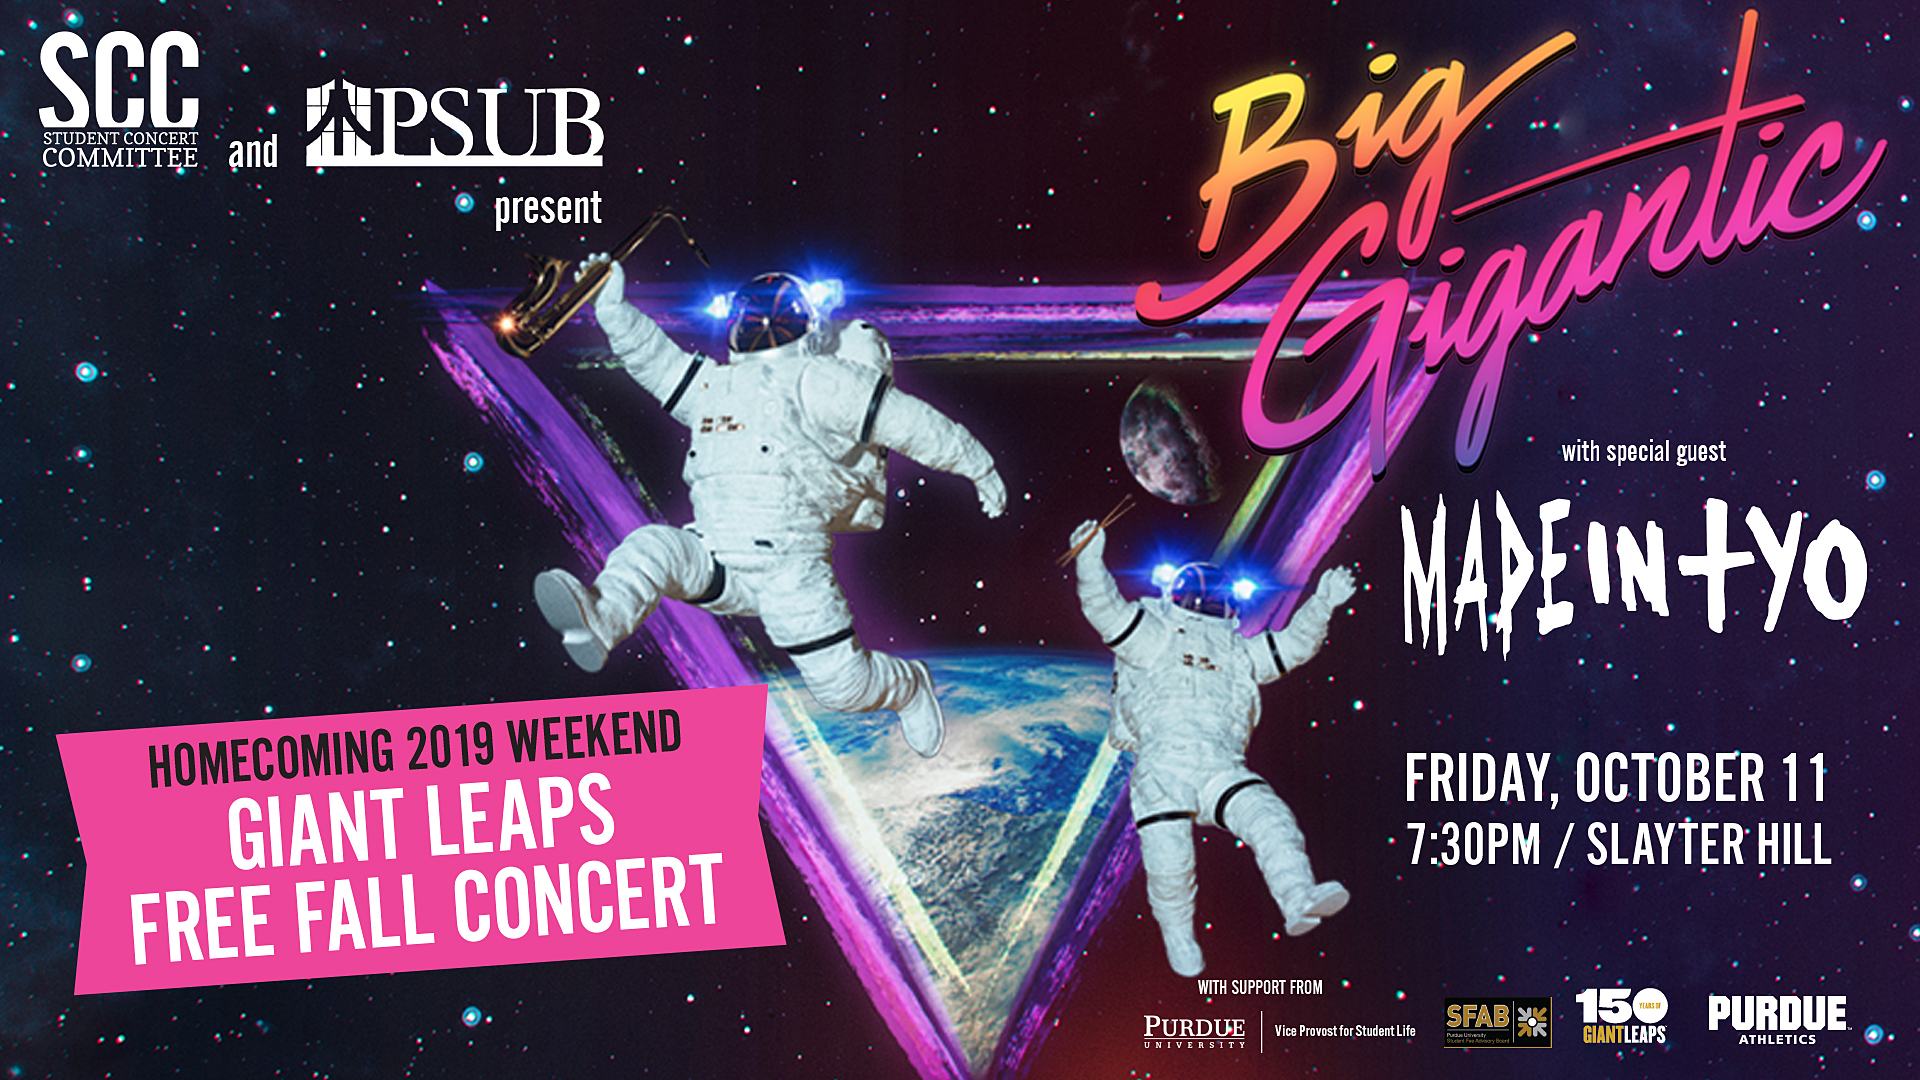 Purdue University presents Homecoming 2019 with Big Gigantic ft. MadeInTYO